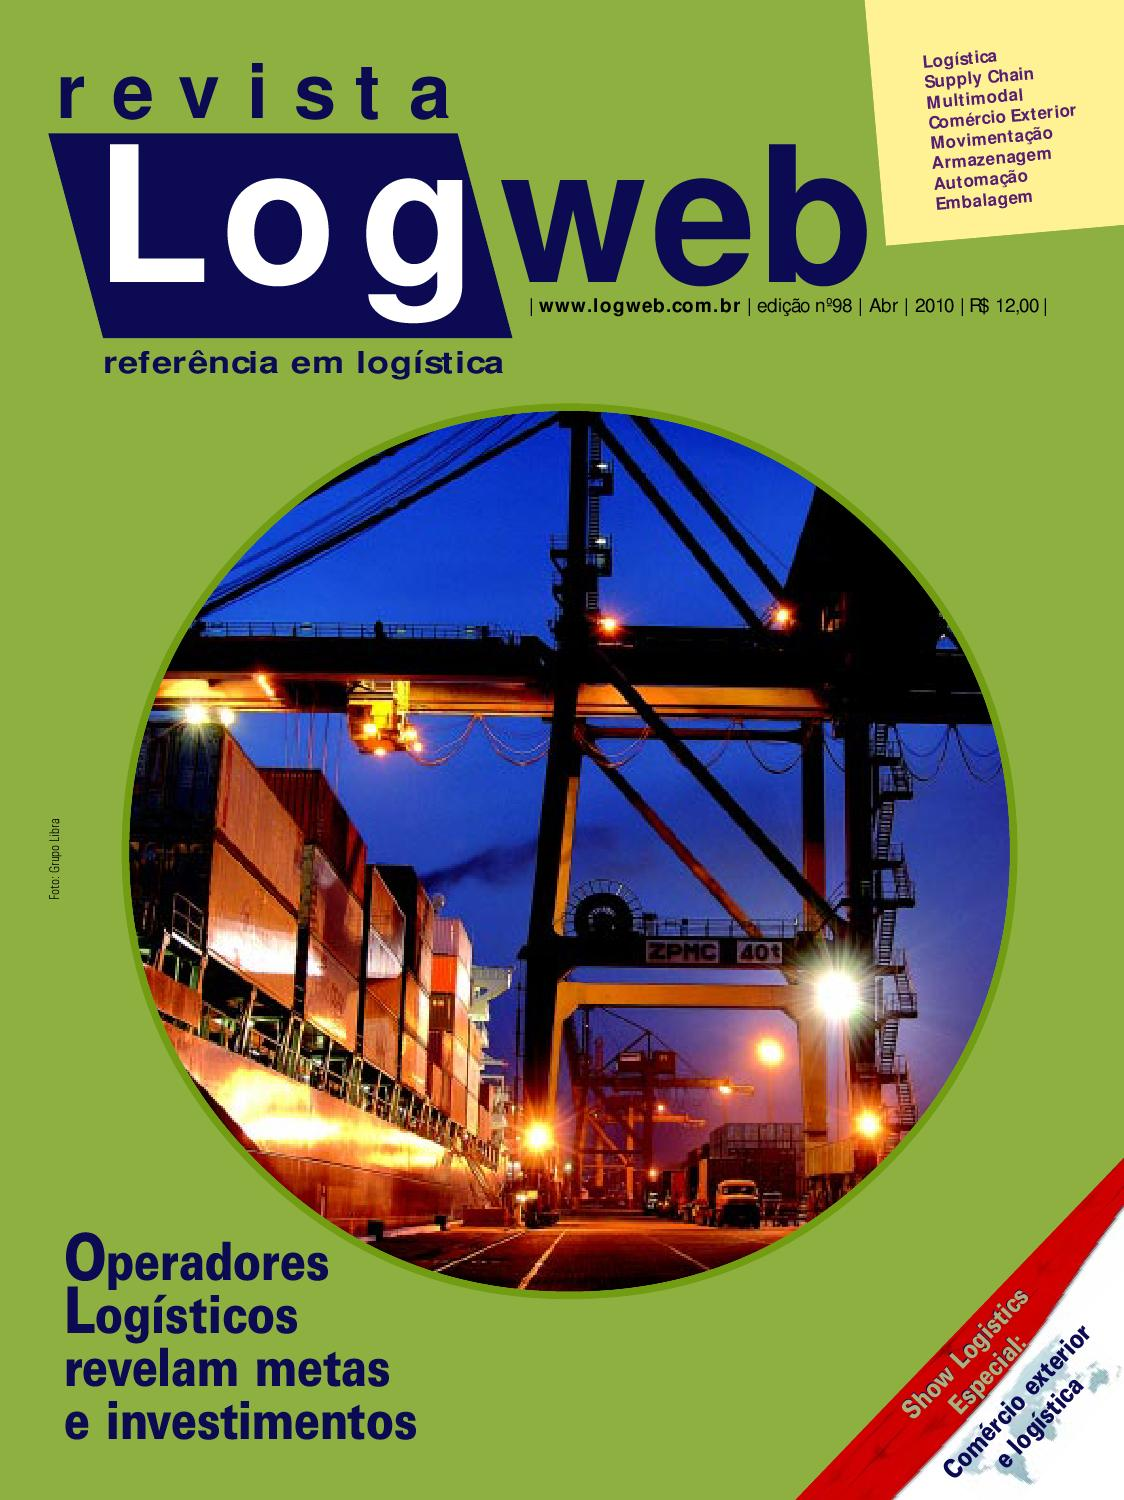 f2173a4573 Revista Logweb 98 by André Salvagno - issuu